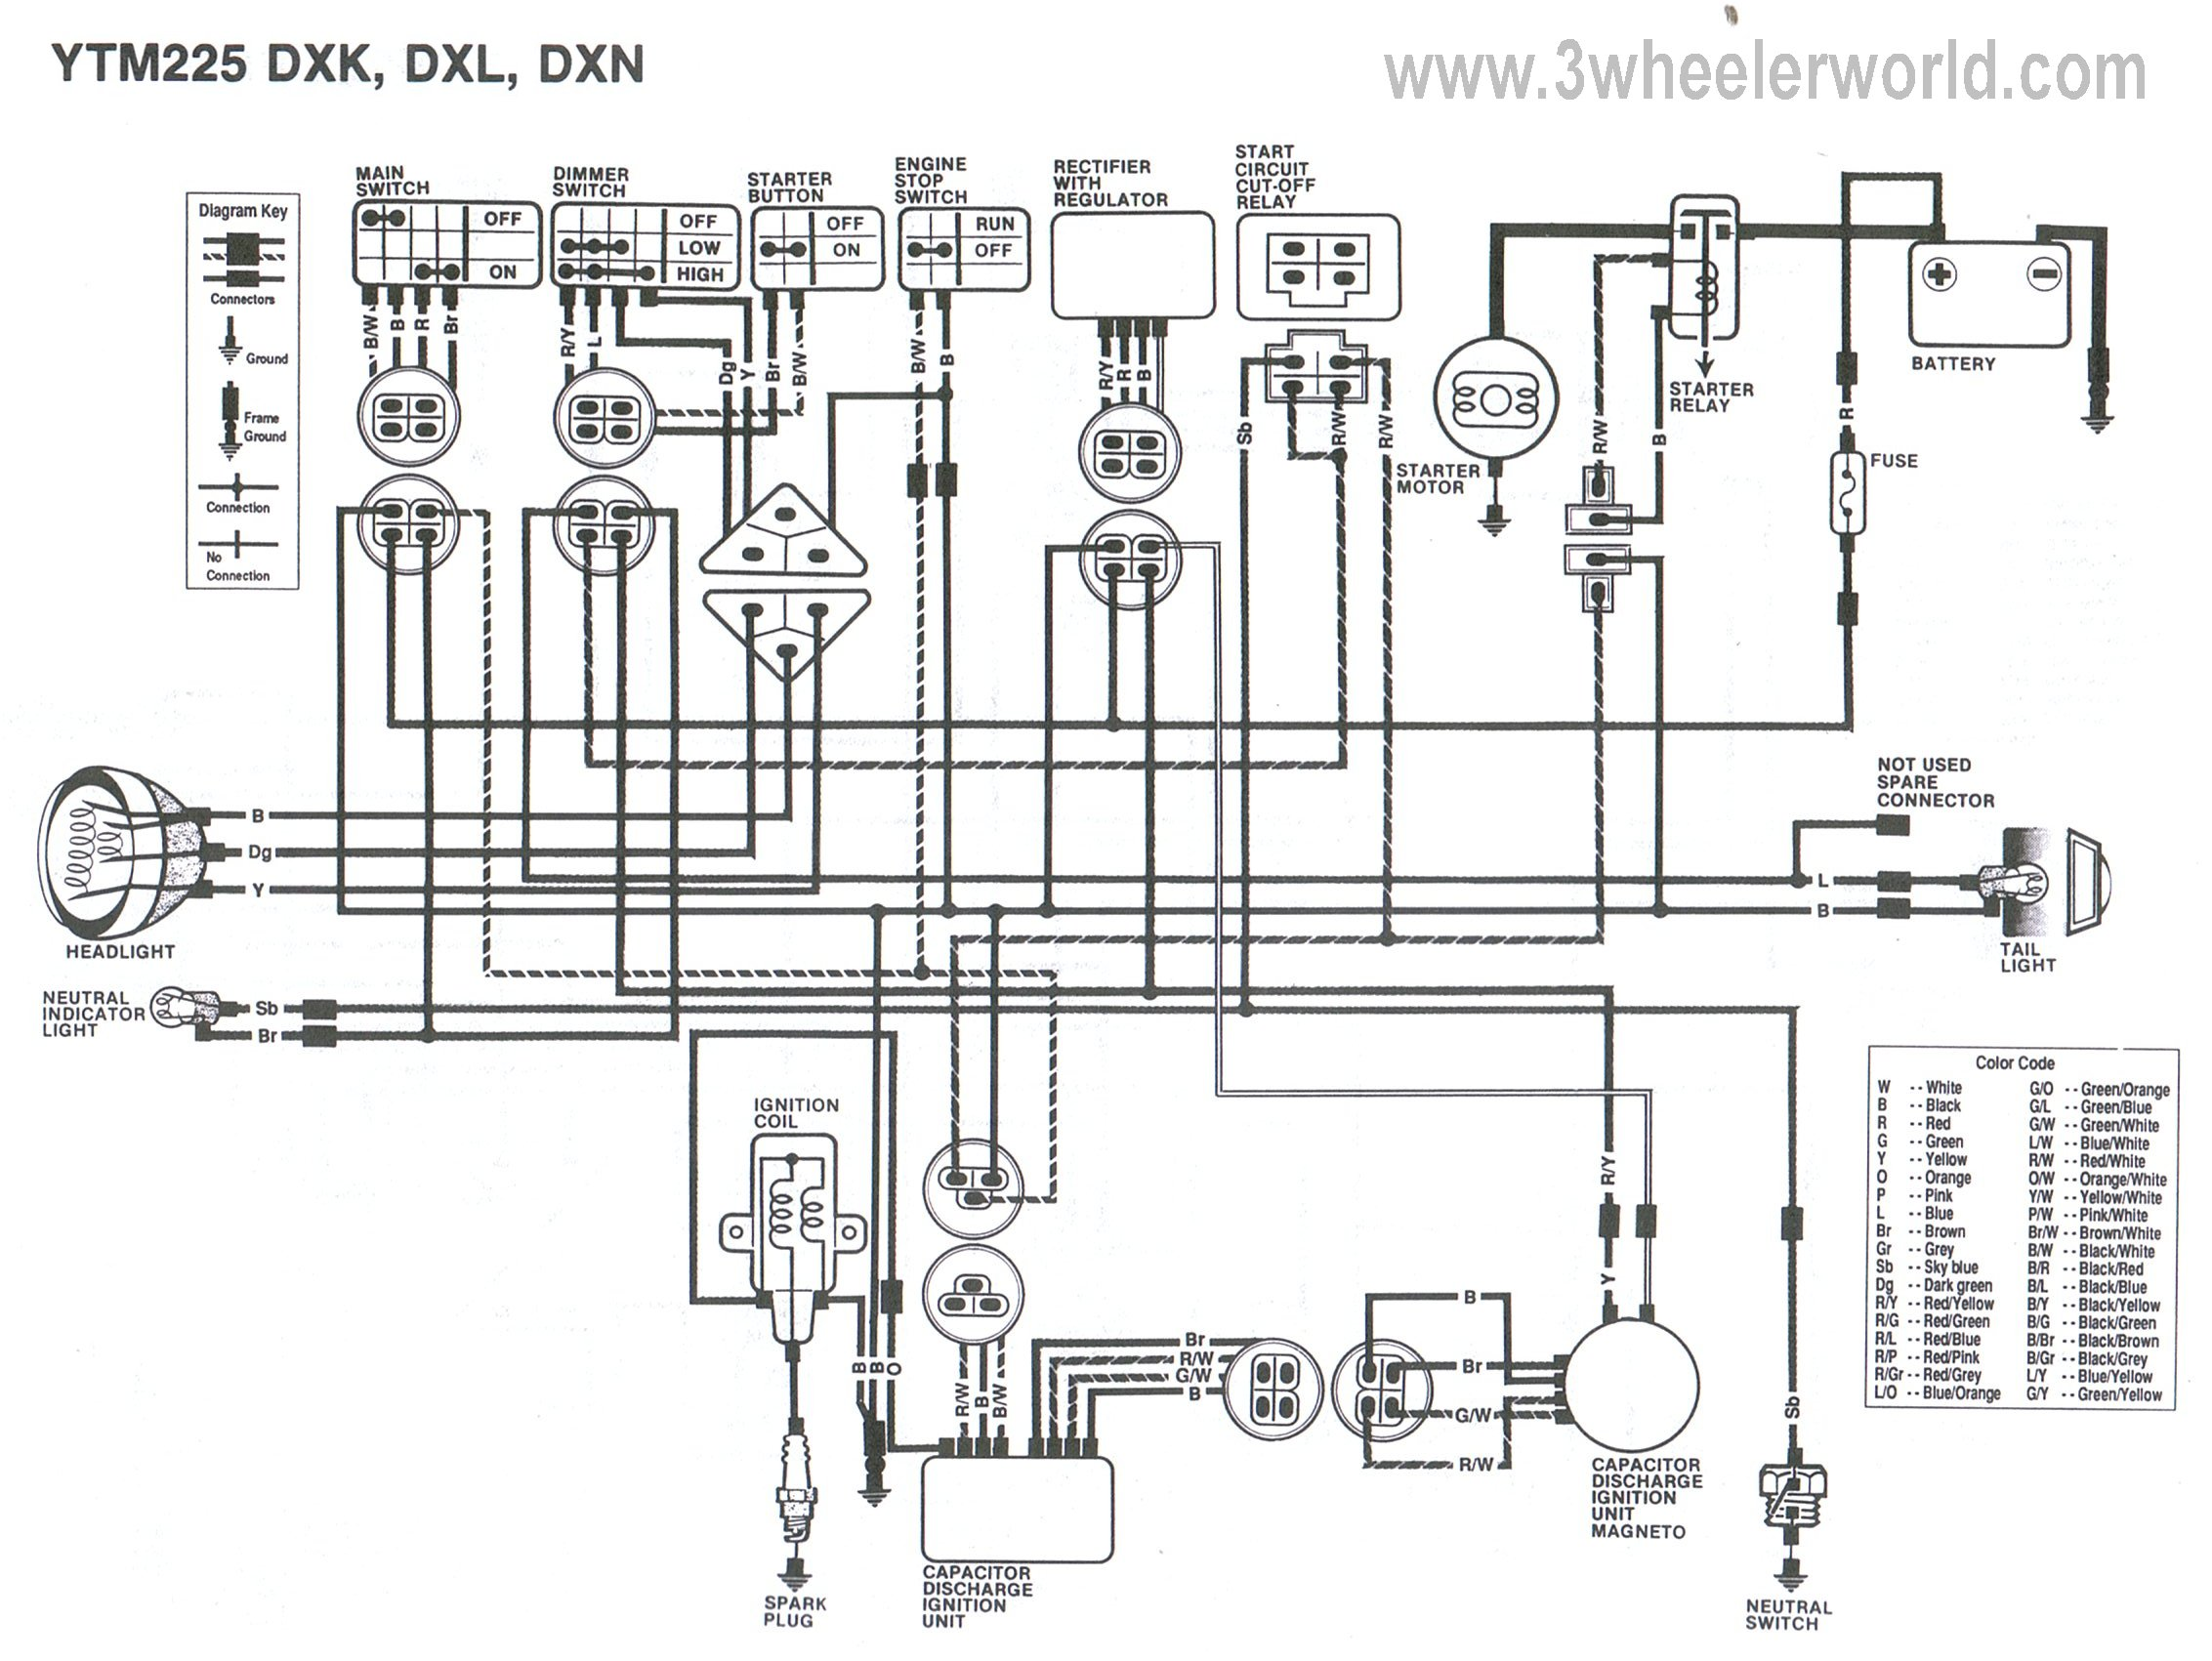 YTM225DXKDXLDXN 3 wheeler world tech help yamaha wiring diagrams wiring diagram for yamaha moto 4 at webbmarketing.co